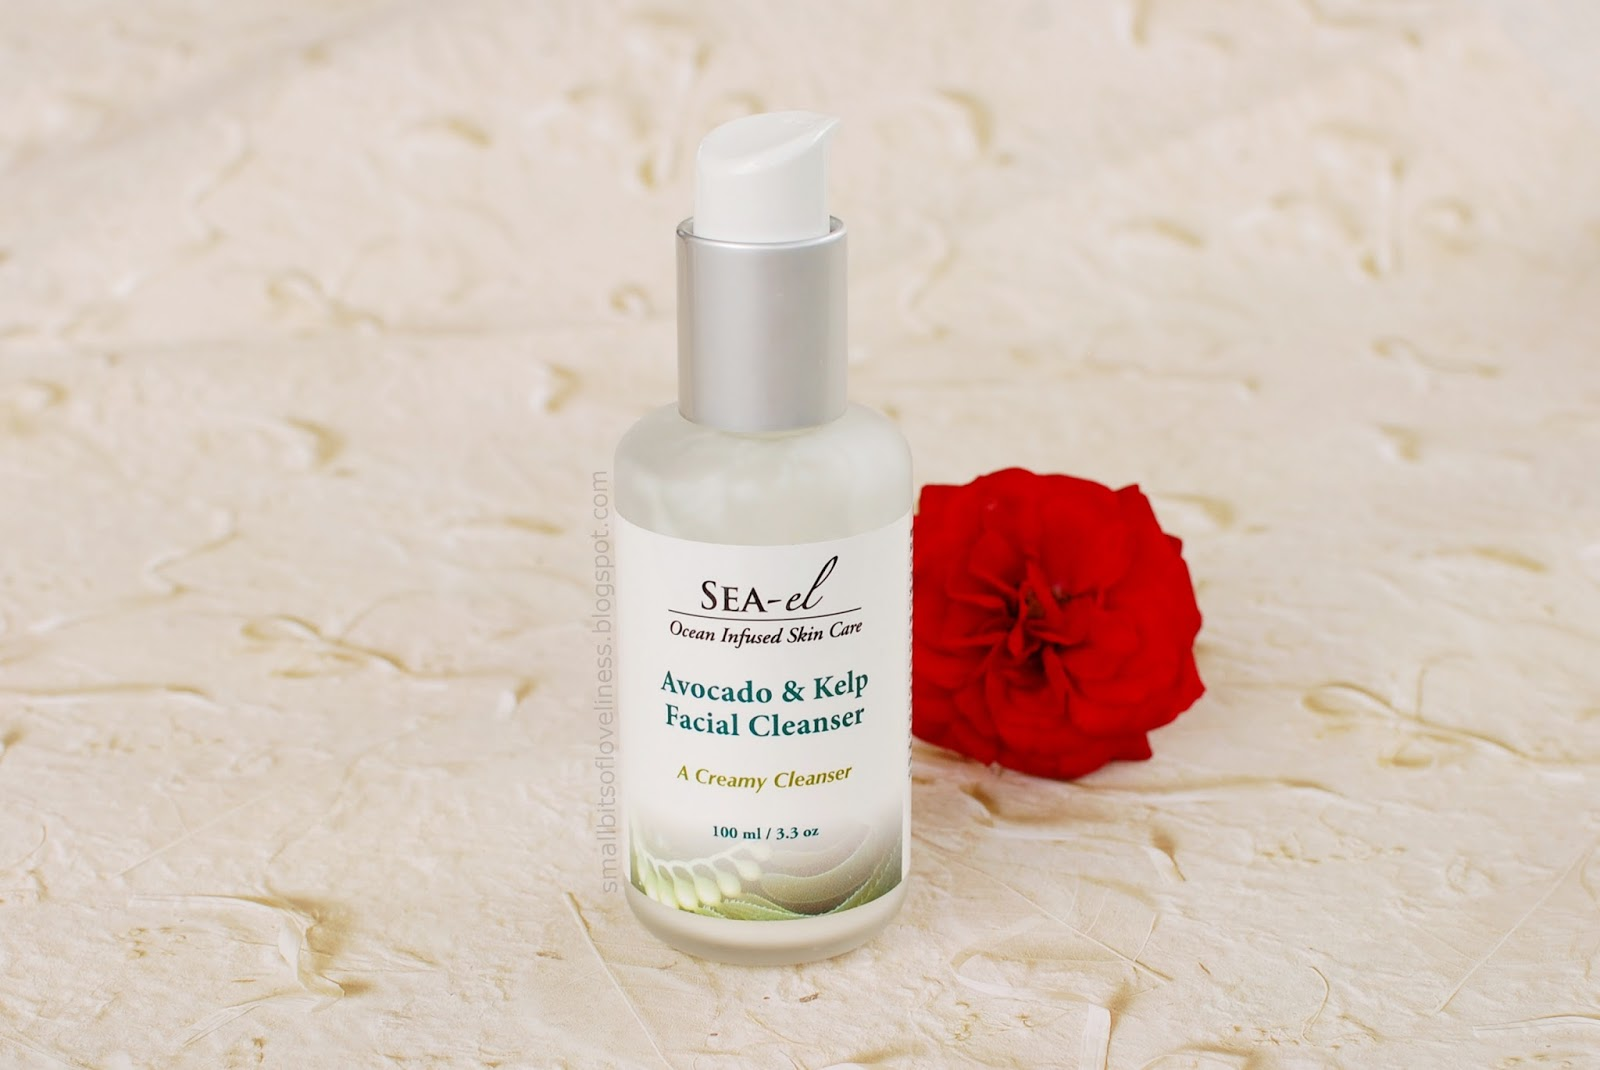 SEA-el Avocado & Kelp Facial Creamy Cleanser